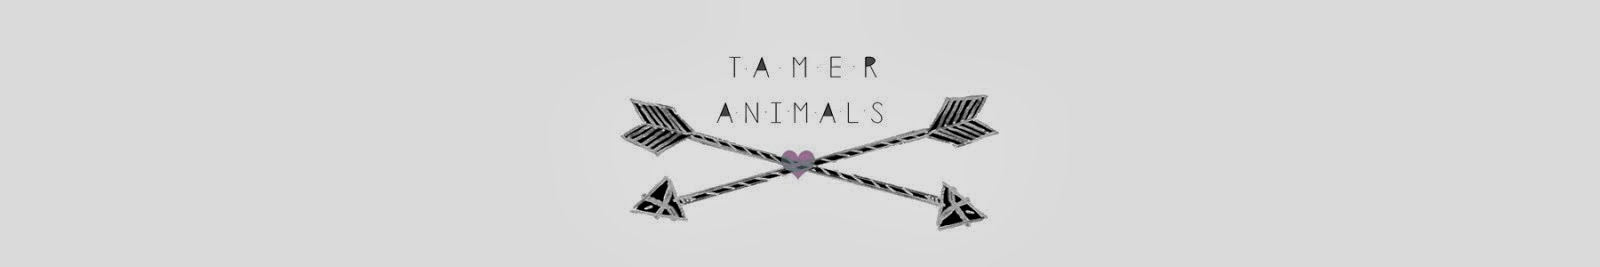 ----tamer animals----